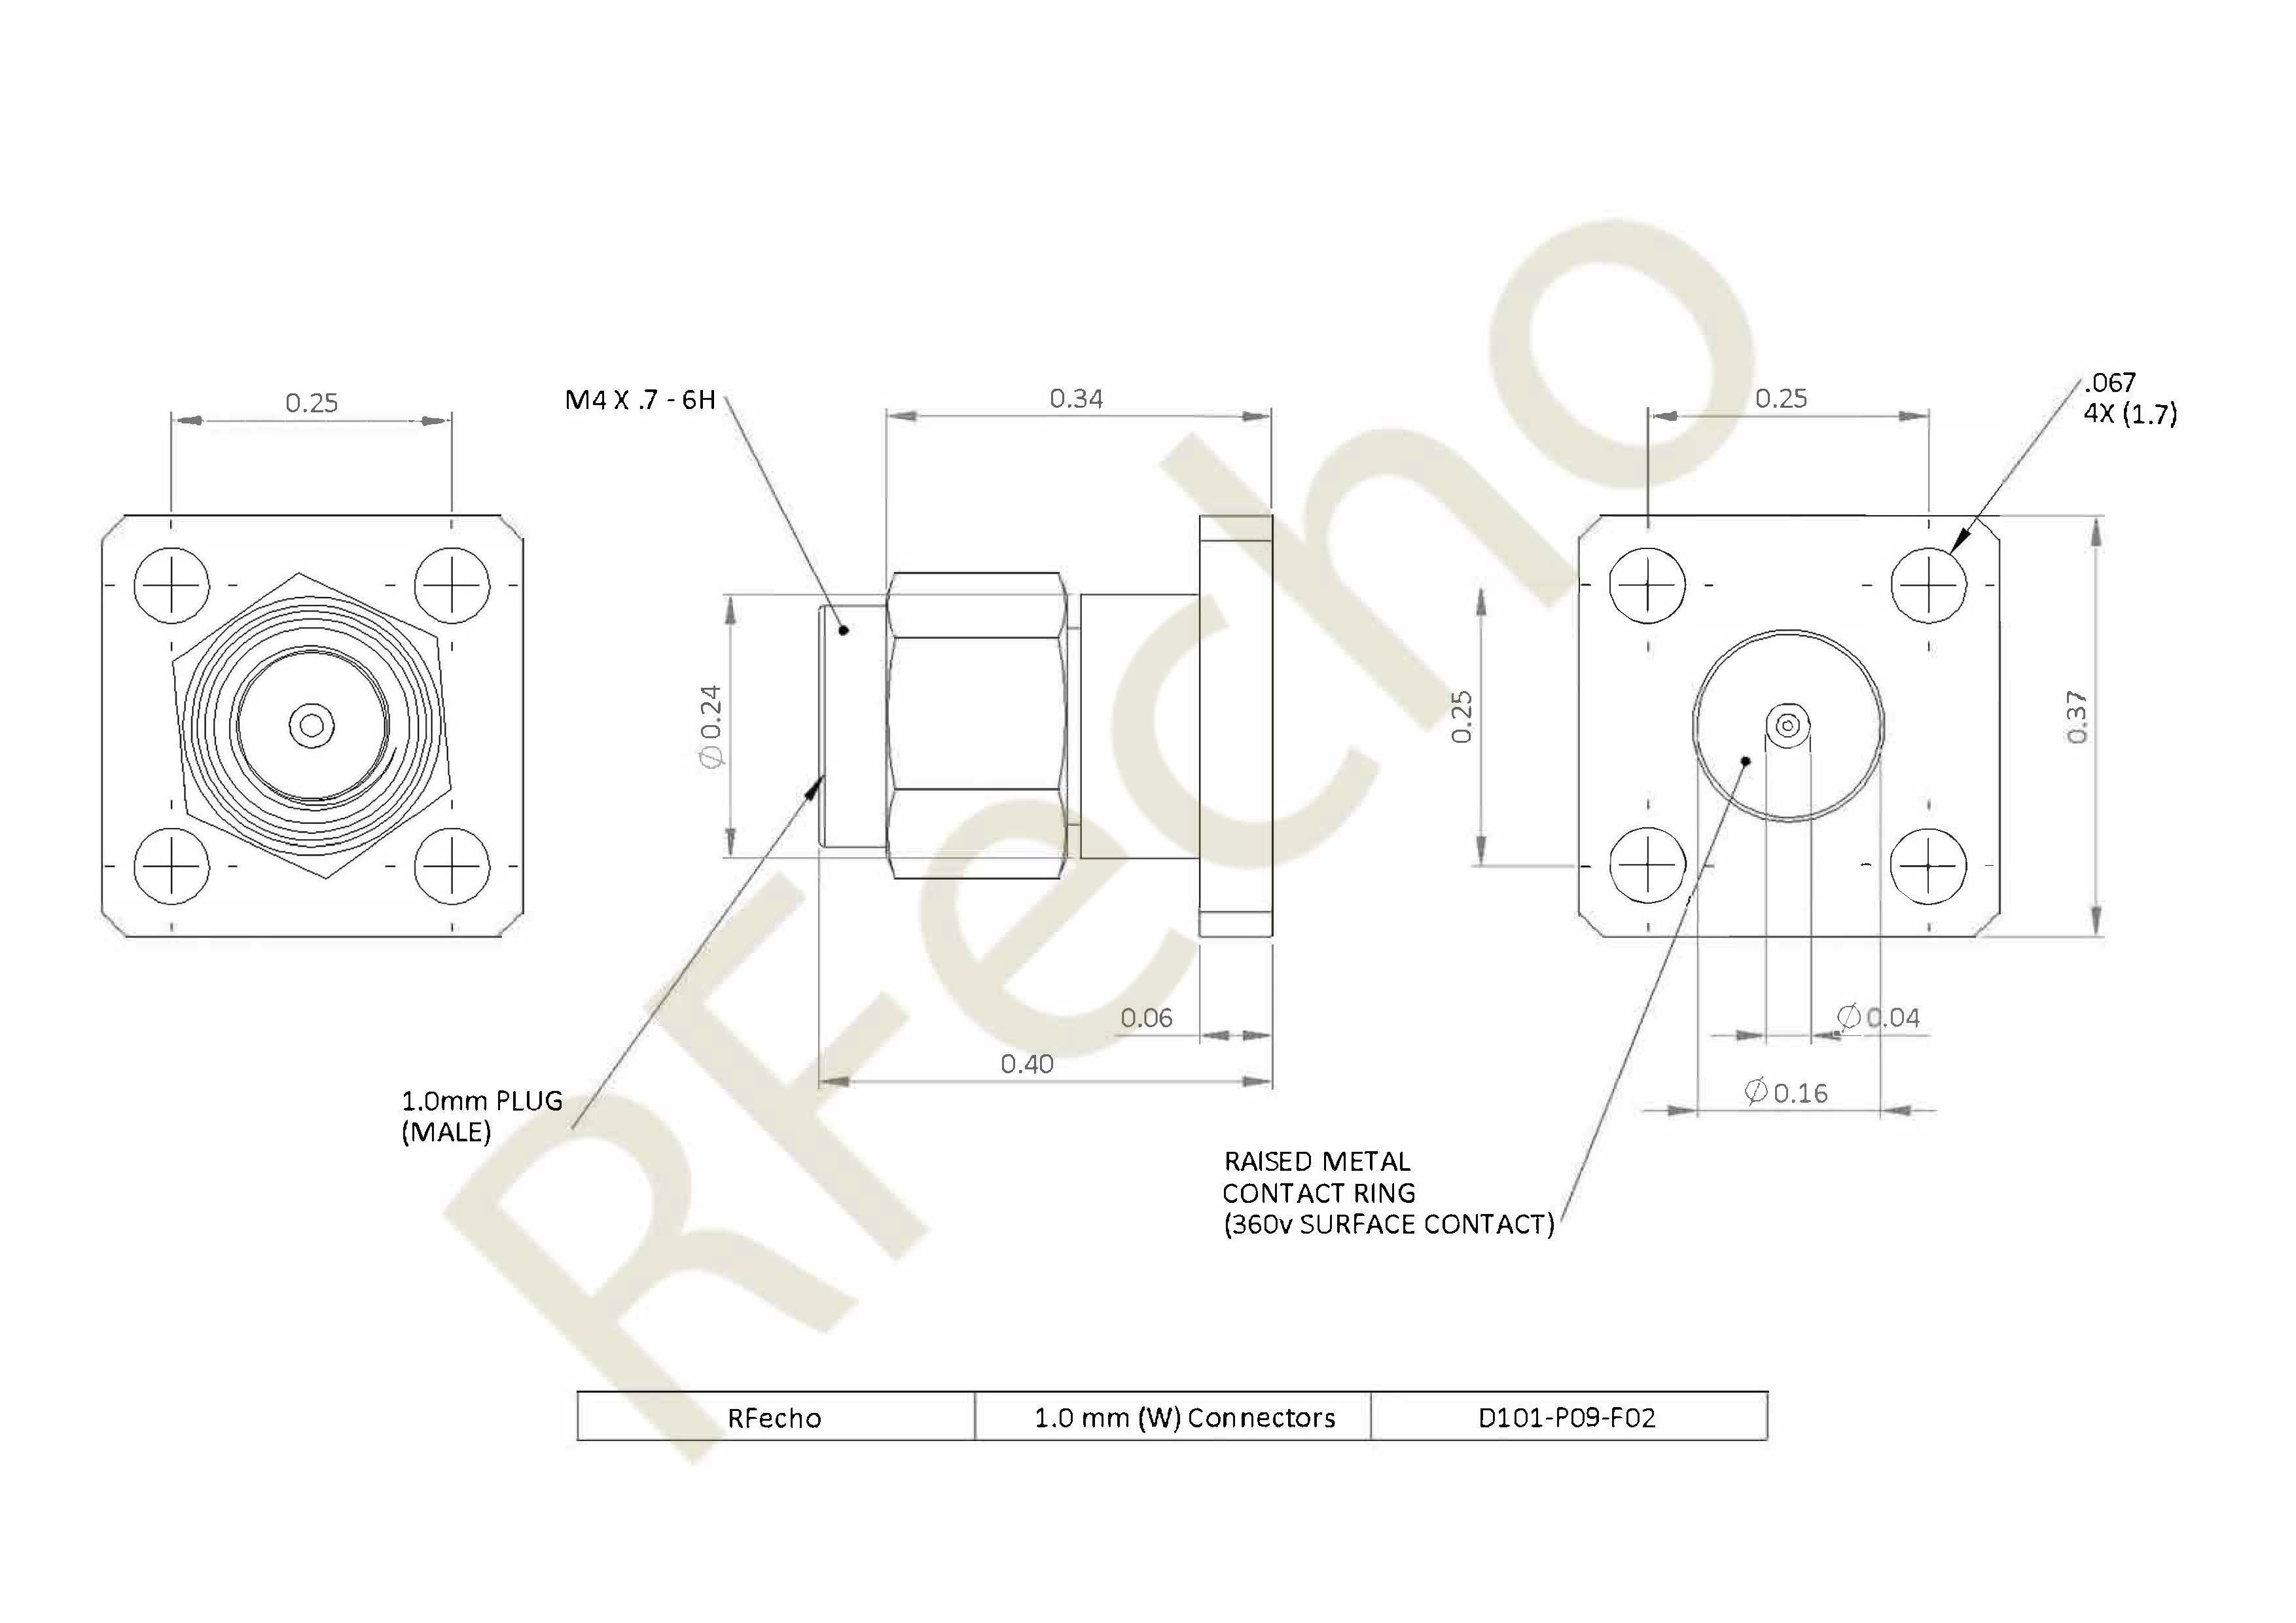 D101 P09 F02 outline 1.0mm 110 GHz, 0.009″ Accept Pin Diameter, 4 Hole 0.375″ Square Mounting Flange Male Connector